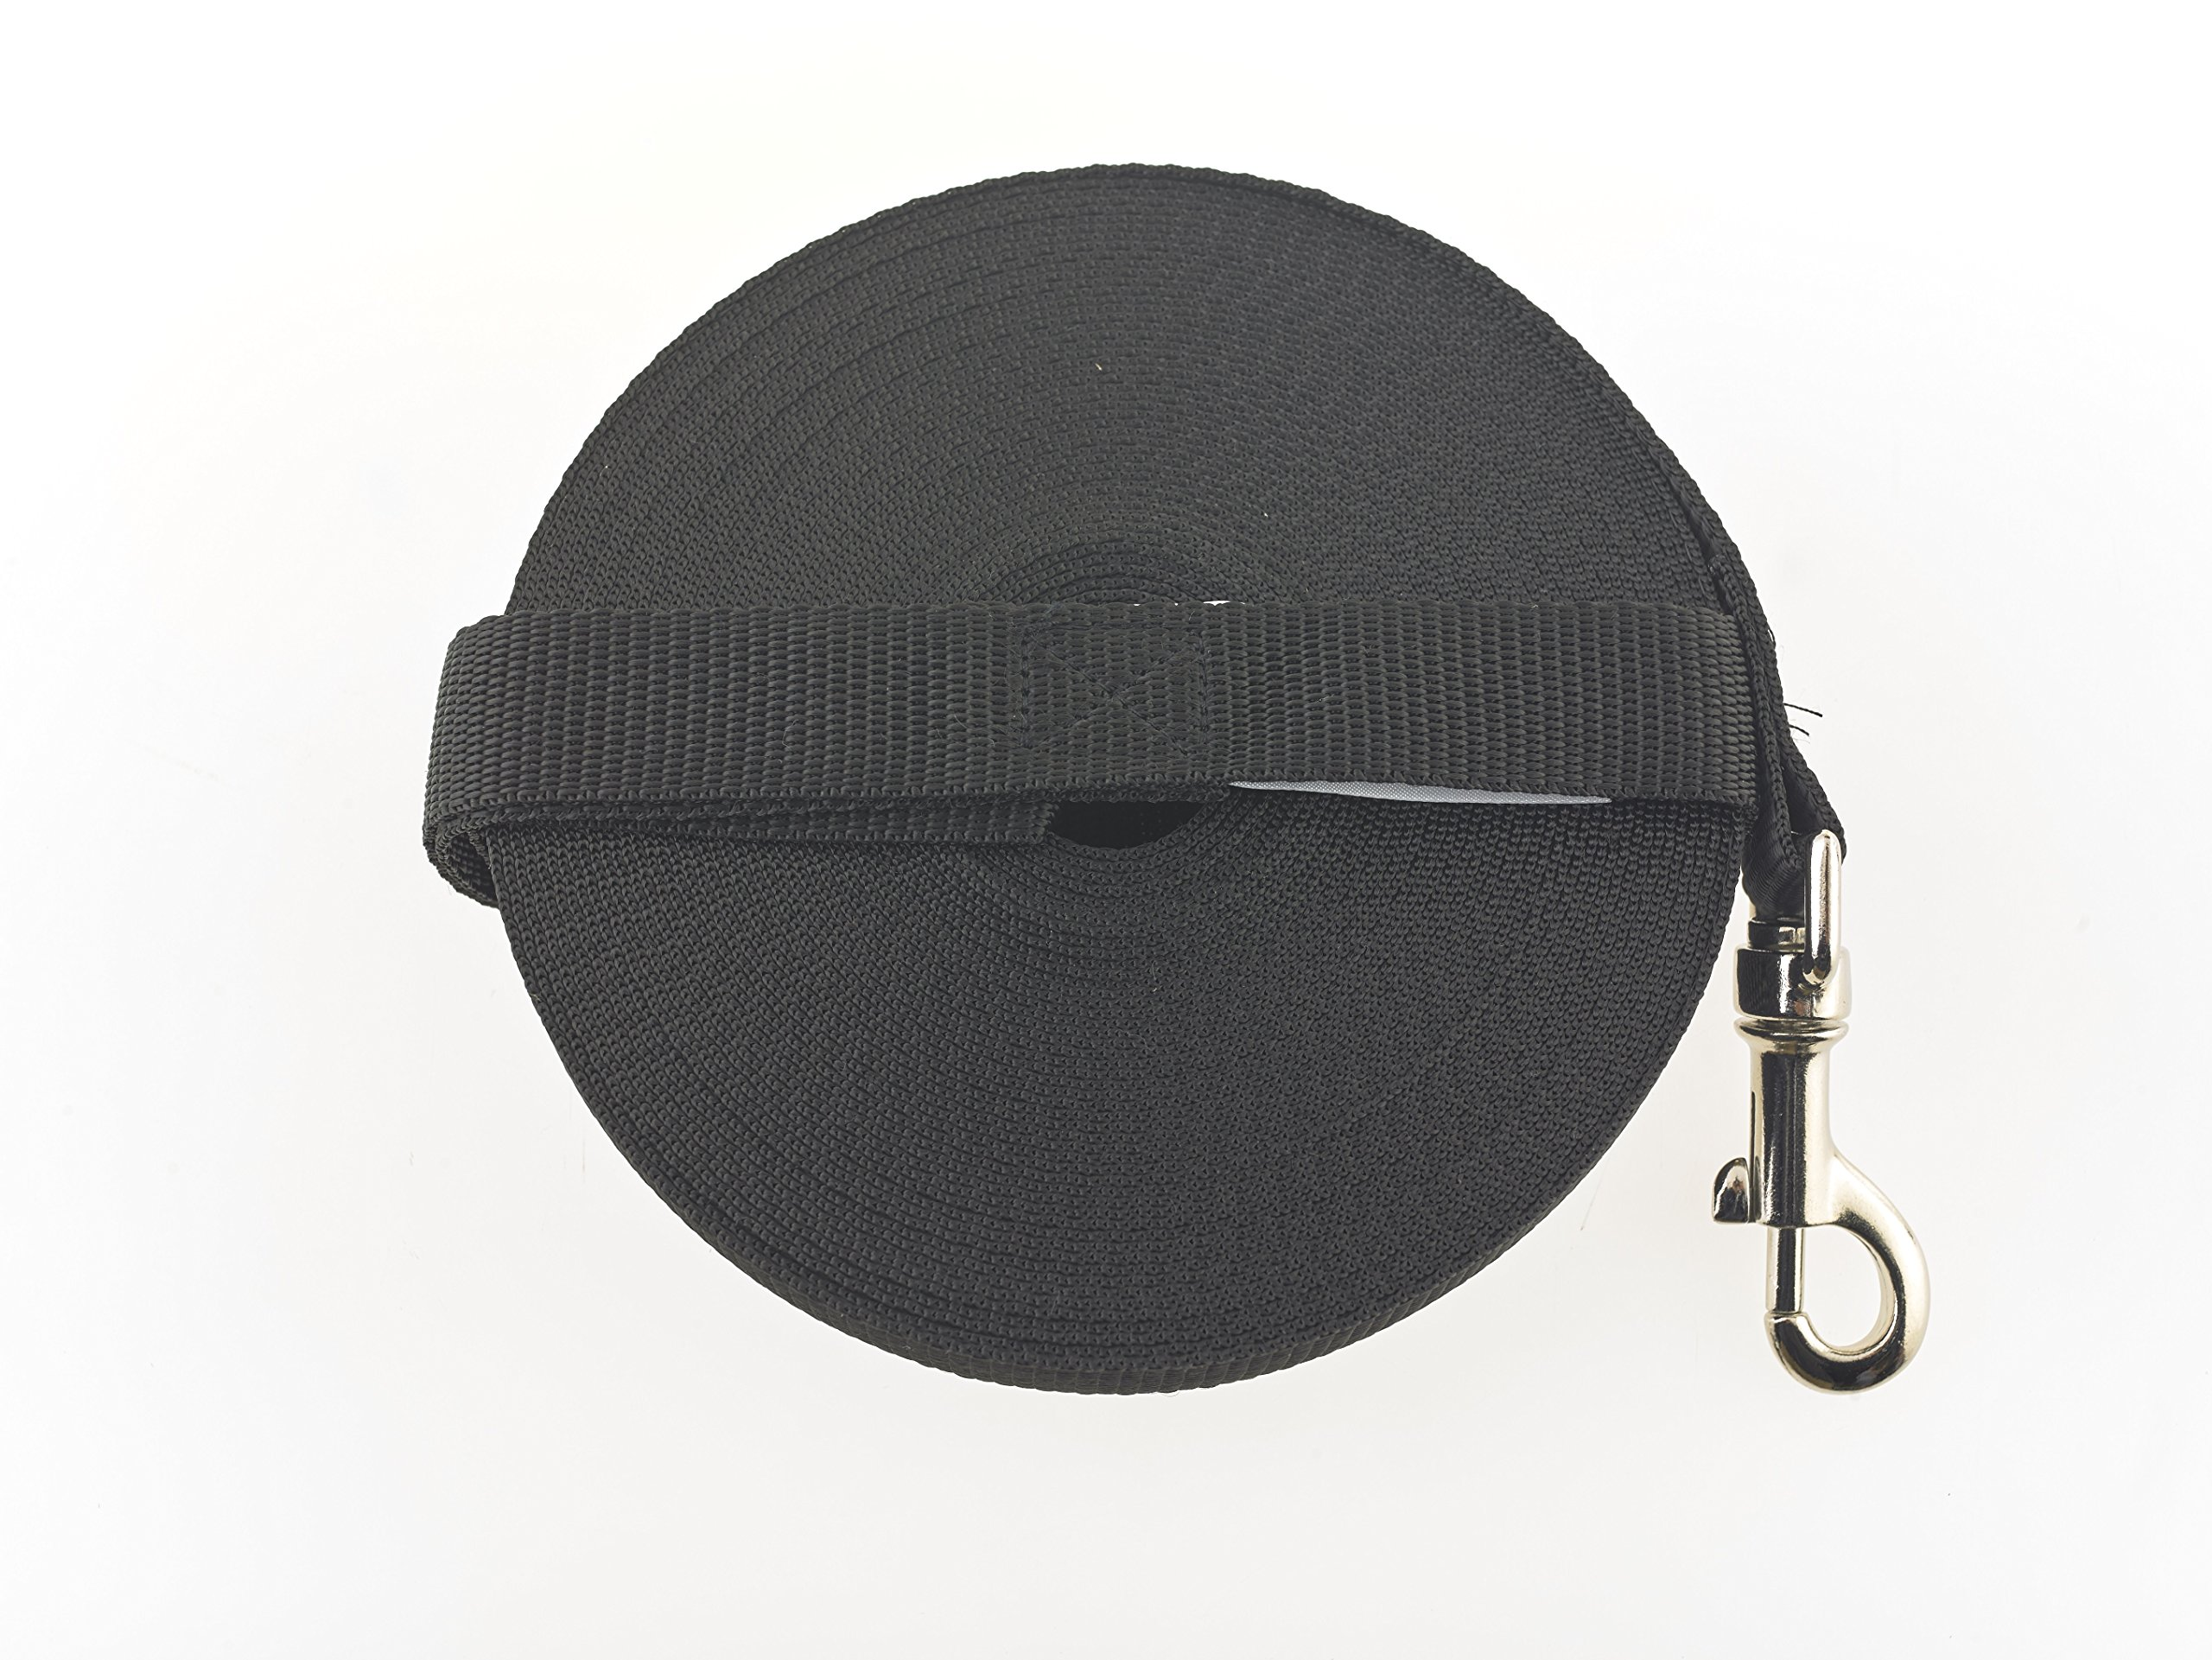 Maximum Pet Products 50ft Black Dog Training Lead FREE P&P made in the UK